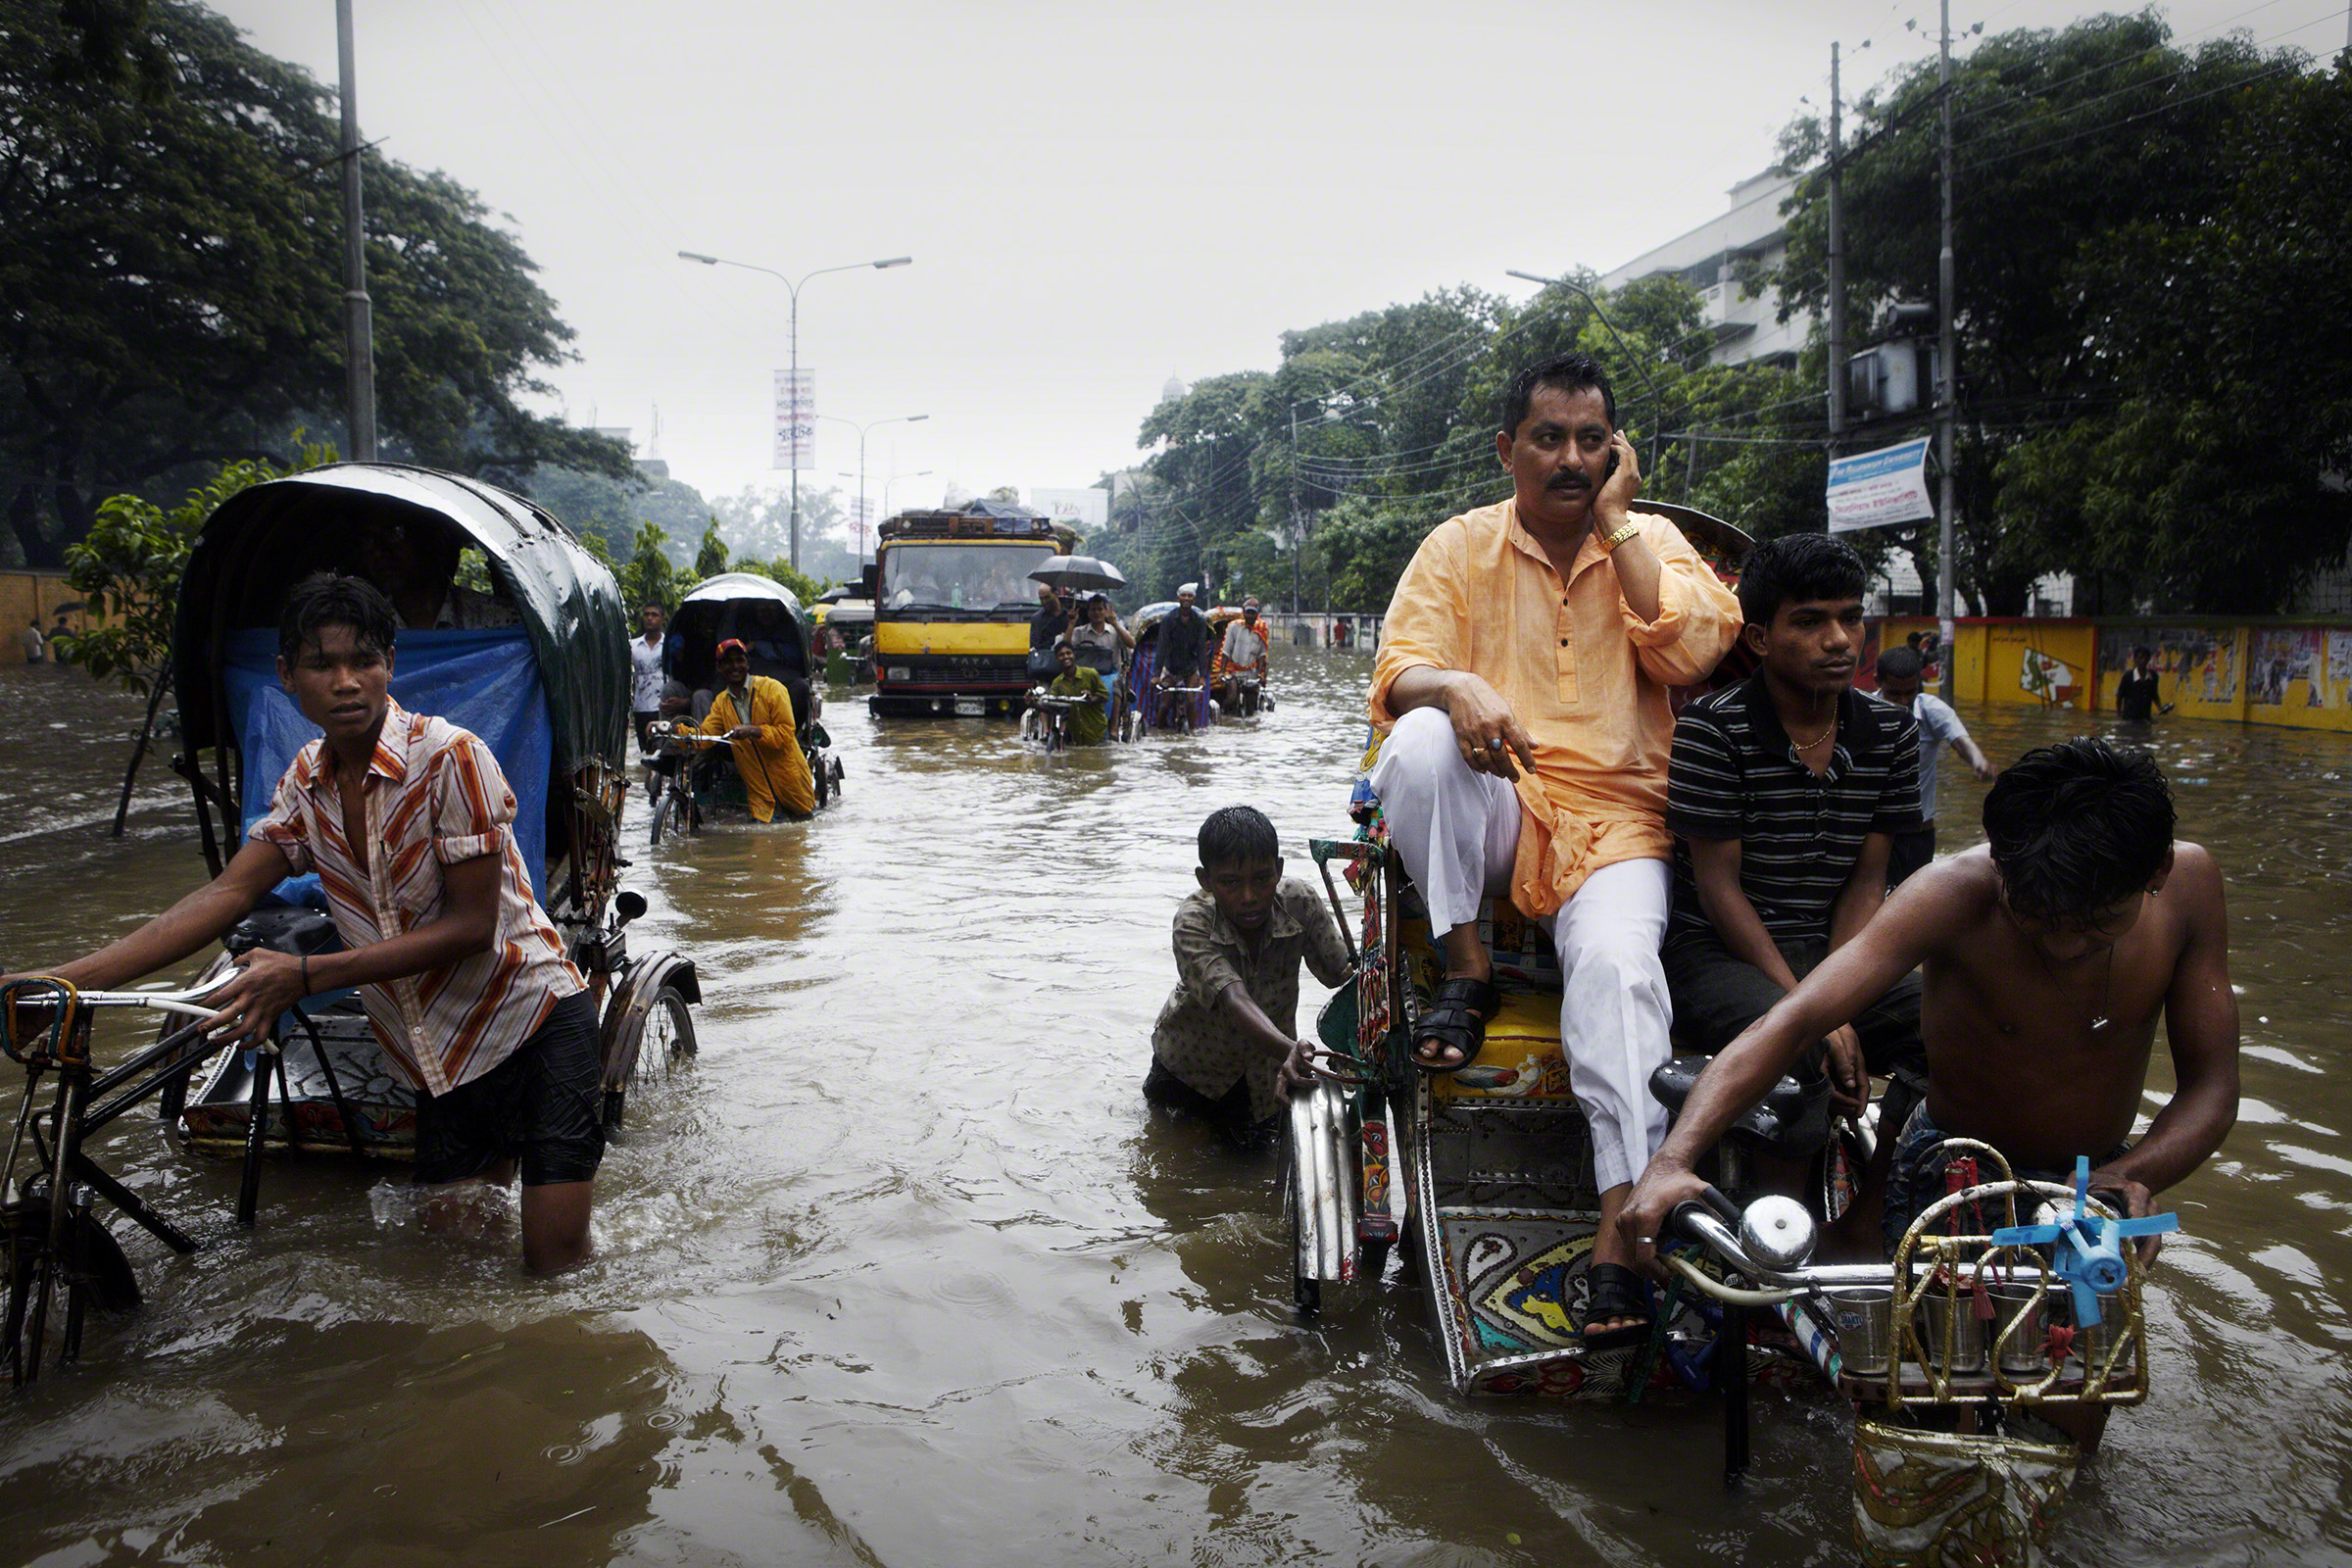 Arambagh, Dhaka, Bangladesh, 2009. After a night of heavy rain, Dhaka experienced widespread flooding around the city. Photo: Jonas Bendiksen